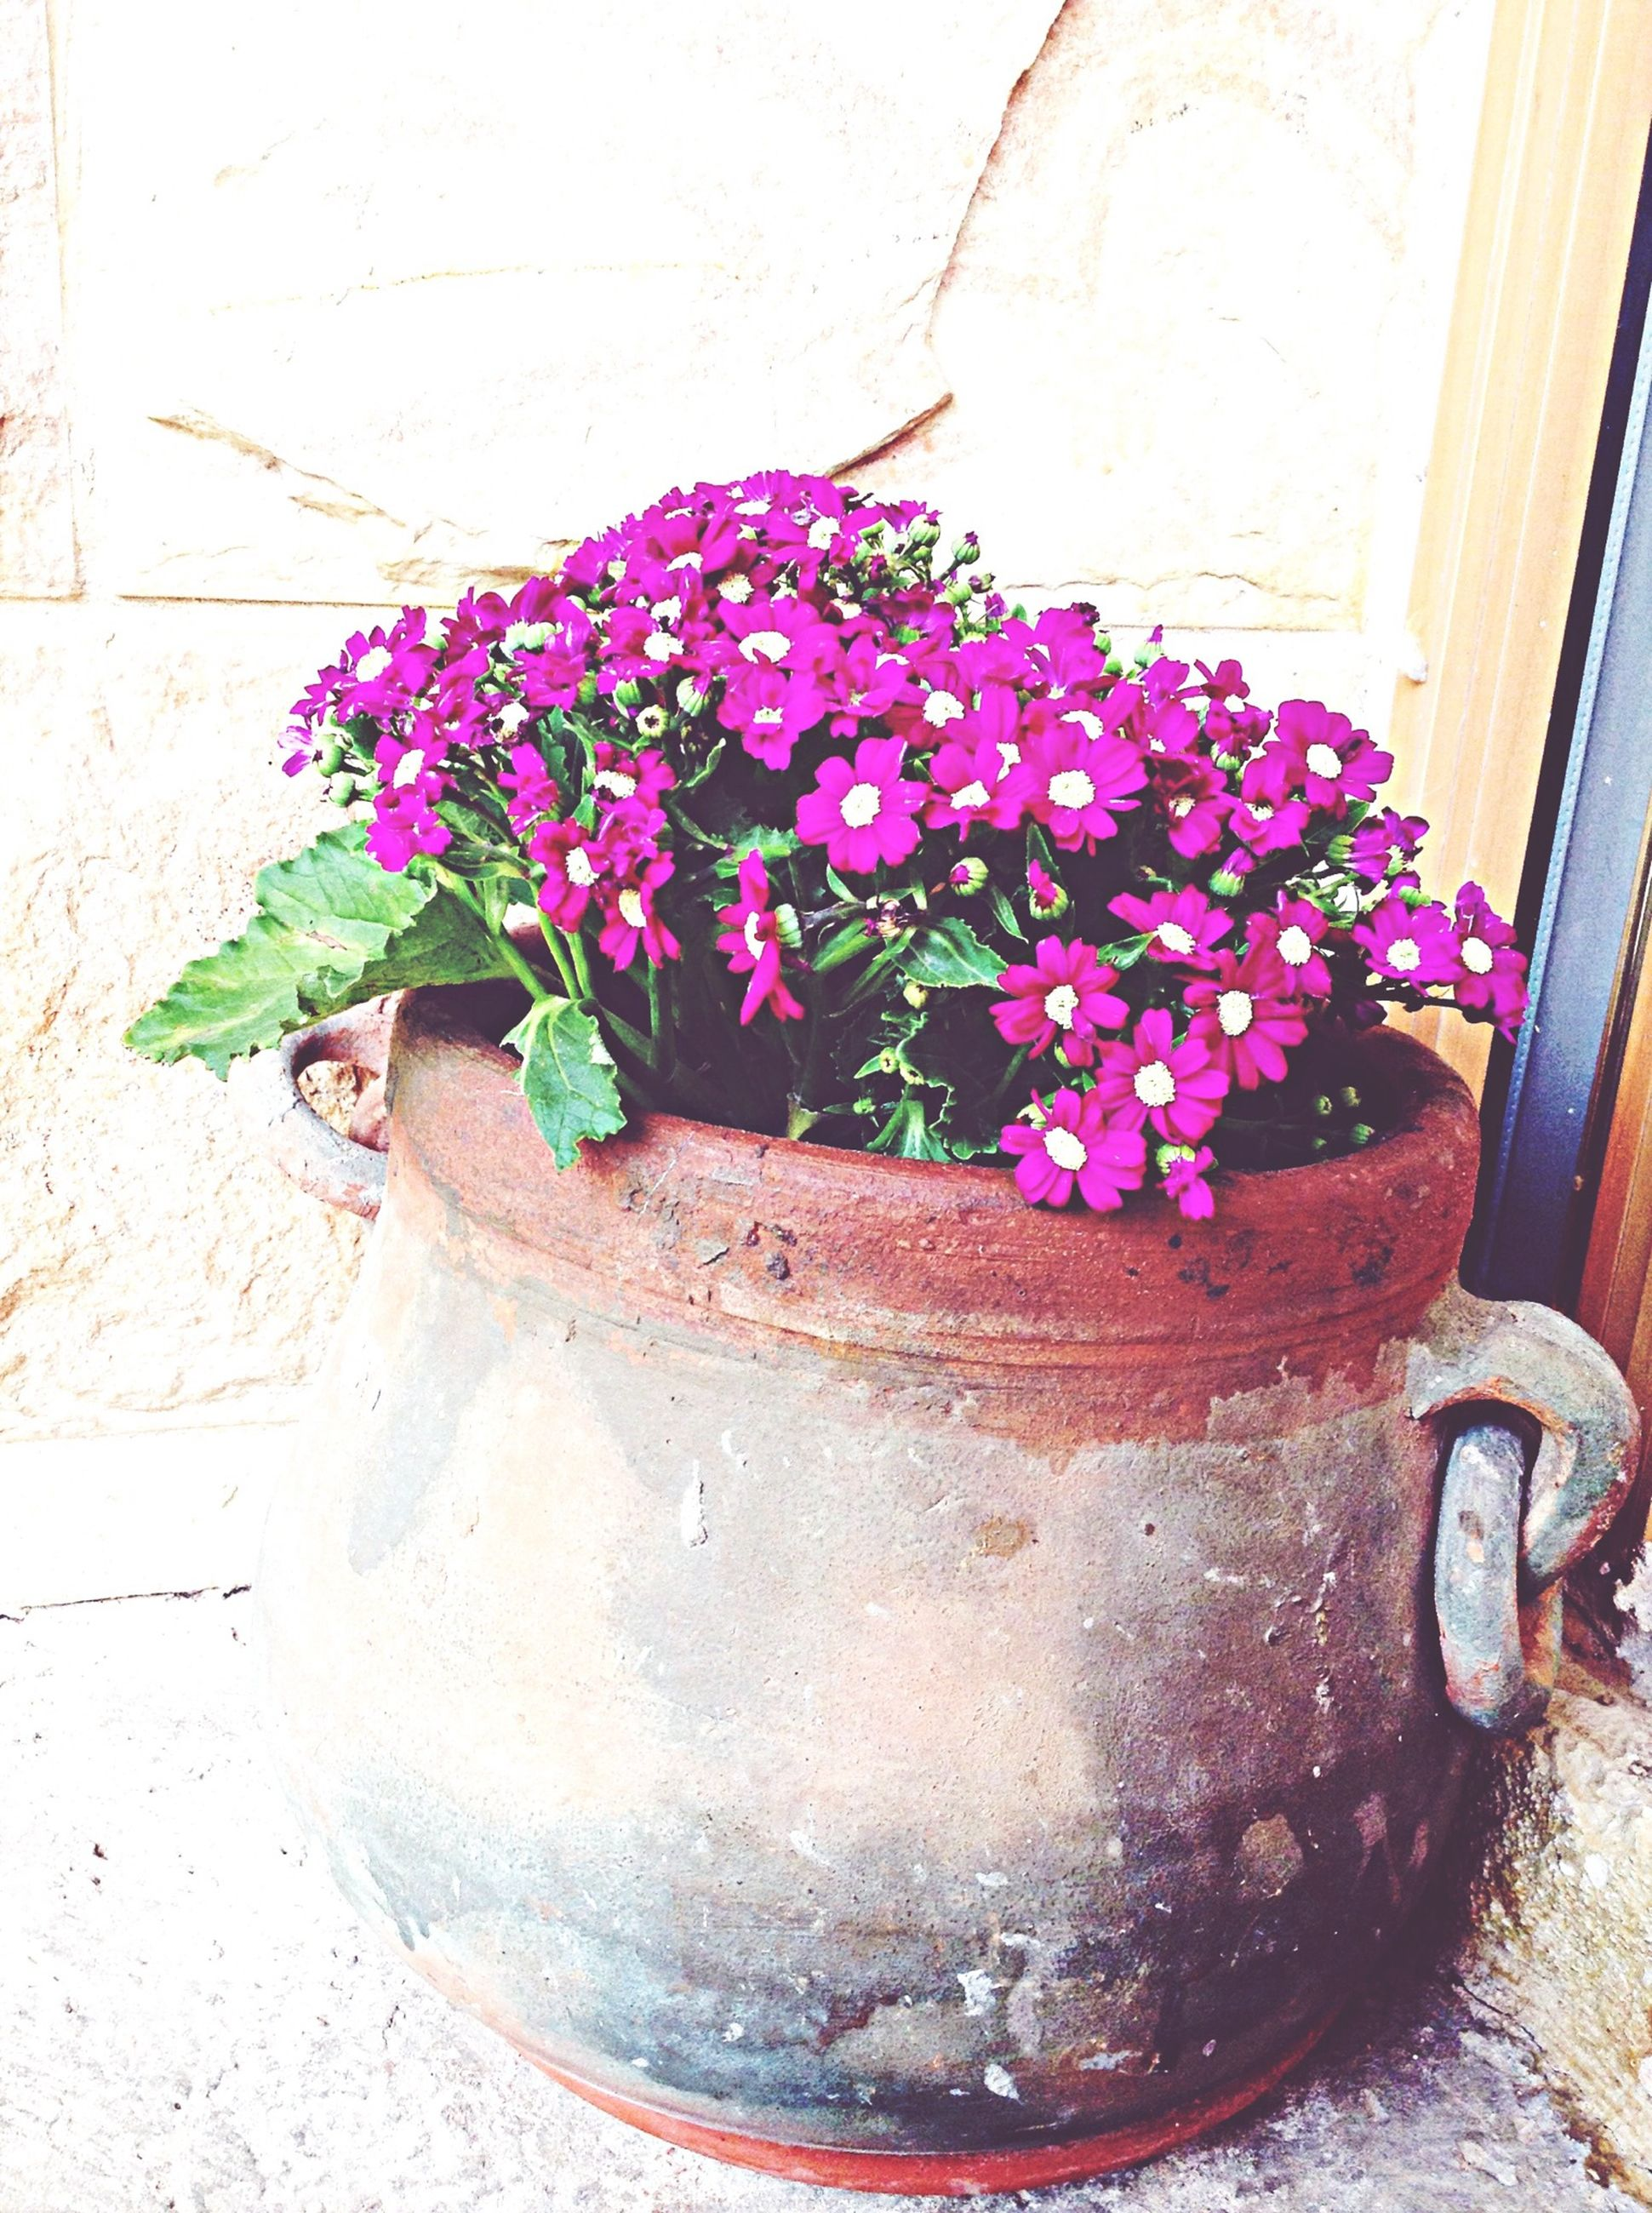 flower, plant, potted plant, wall - building feature, fragility, growth, freshness, petal, purple, built structure, wall, flower pot, leaf, pink color, architecture, no people, blooming, stone wall, day, vase